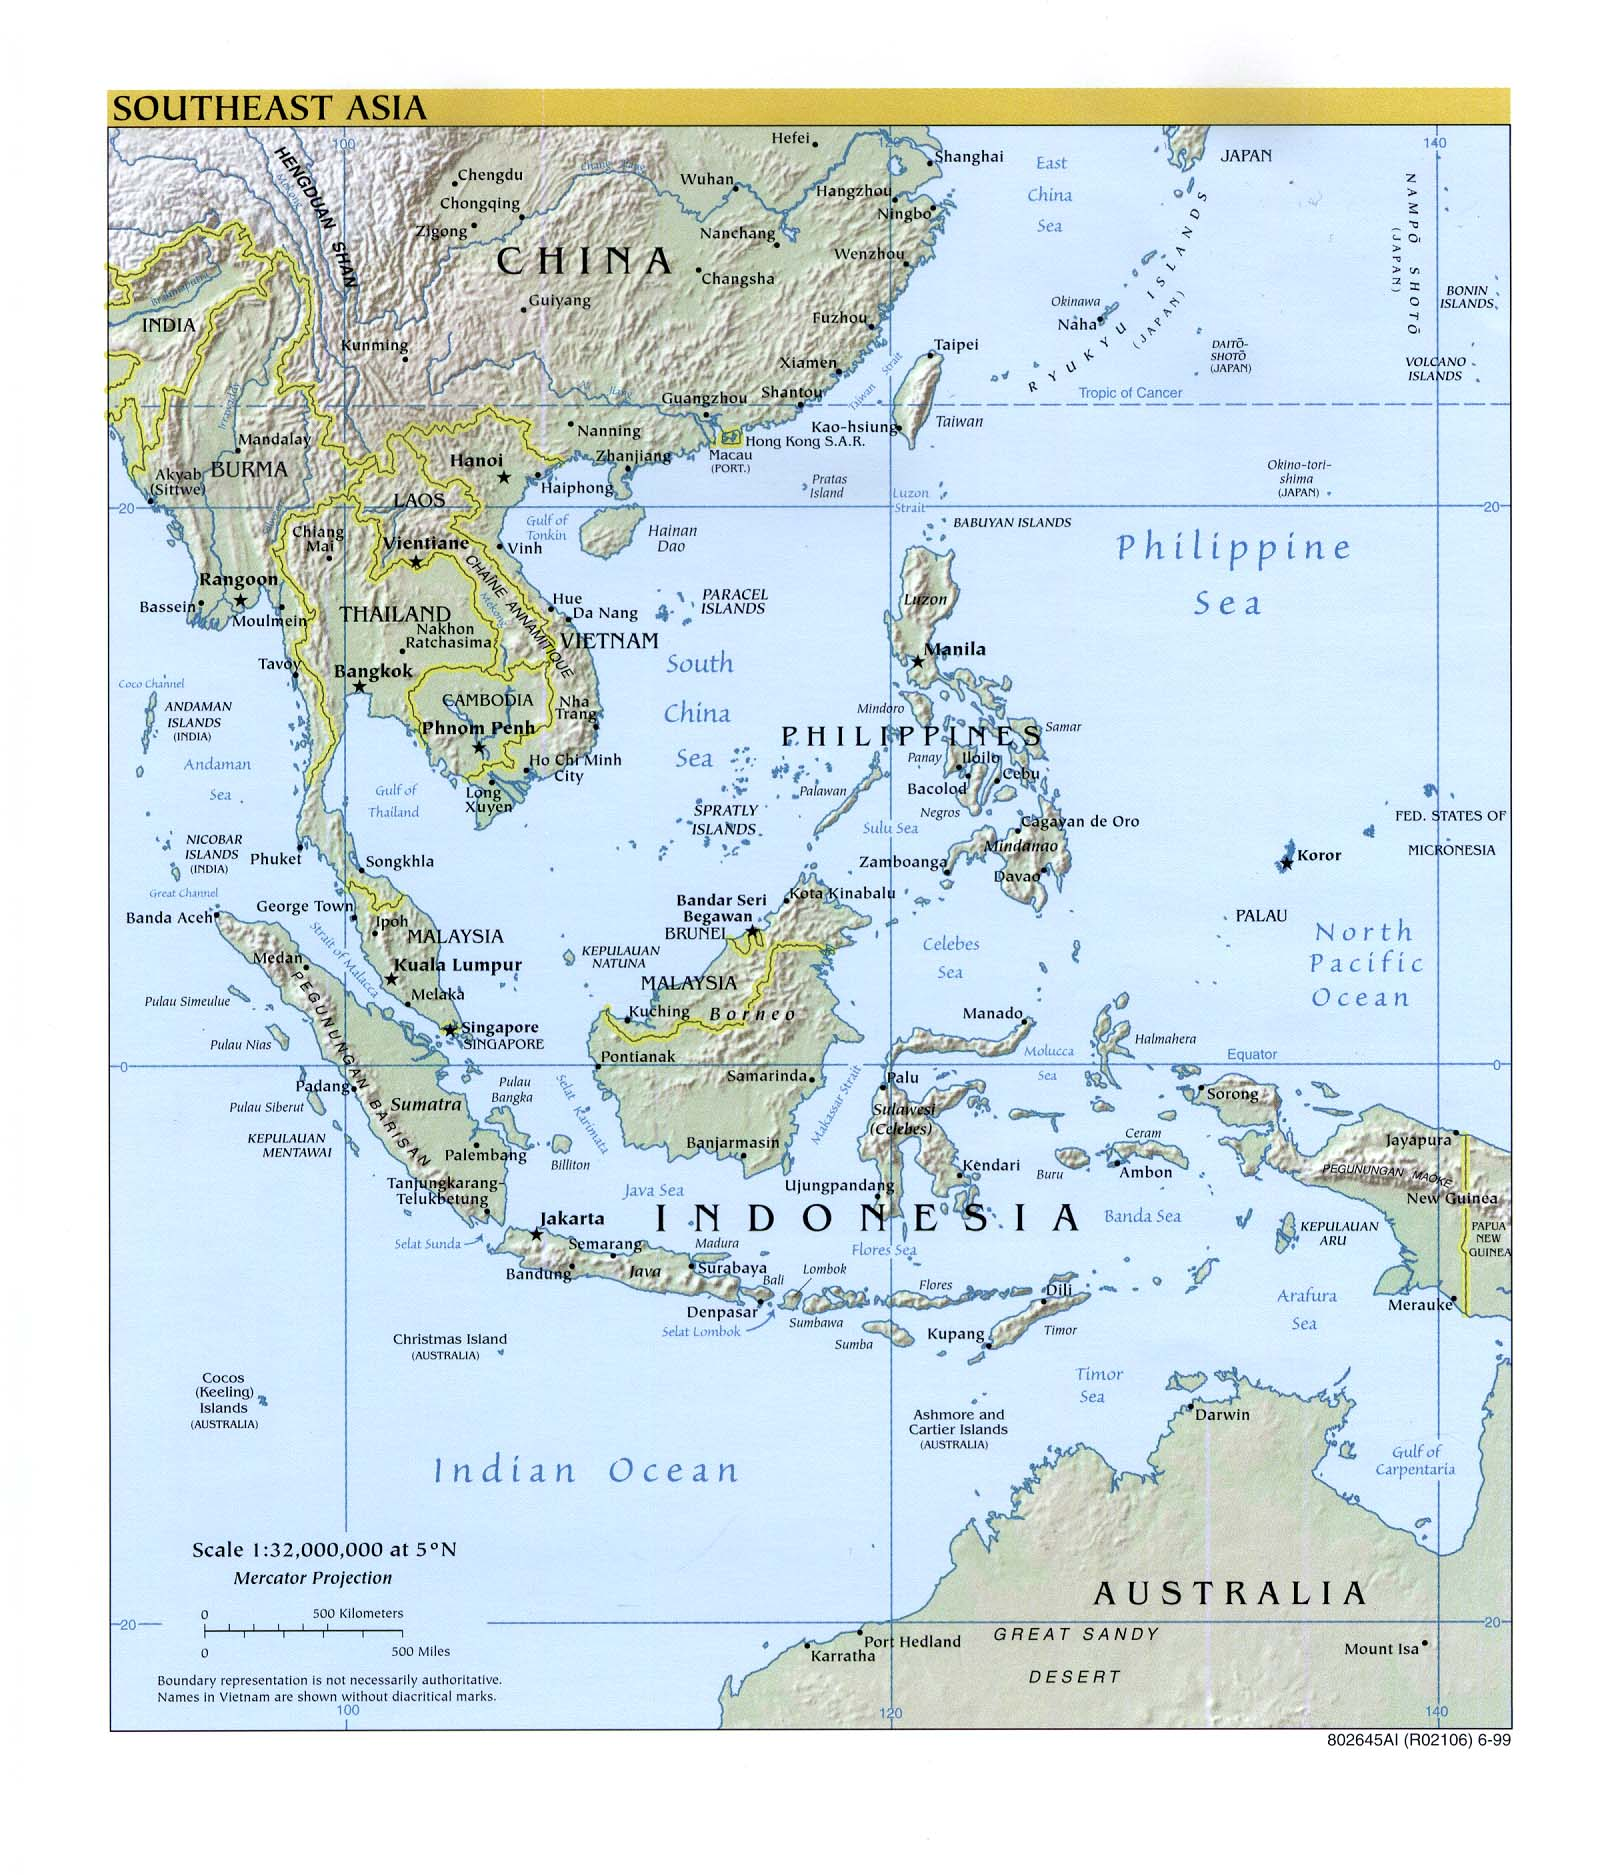 Map Of Southeast Asia And South Pacific.Beaches Blank Map Of Southeast Asia And Australia